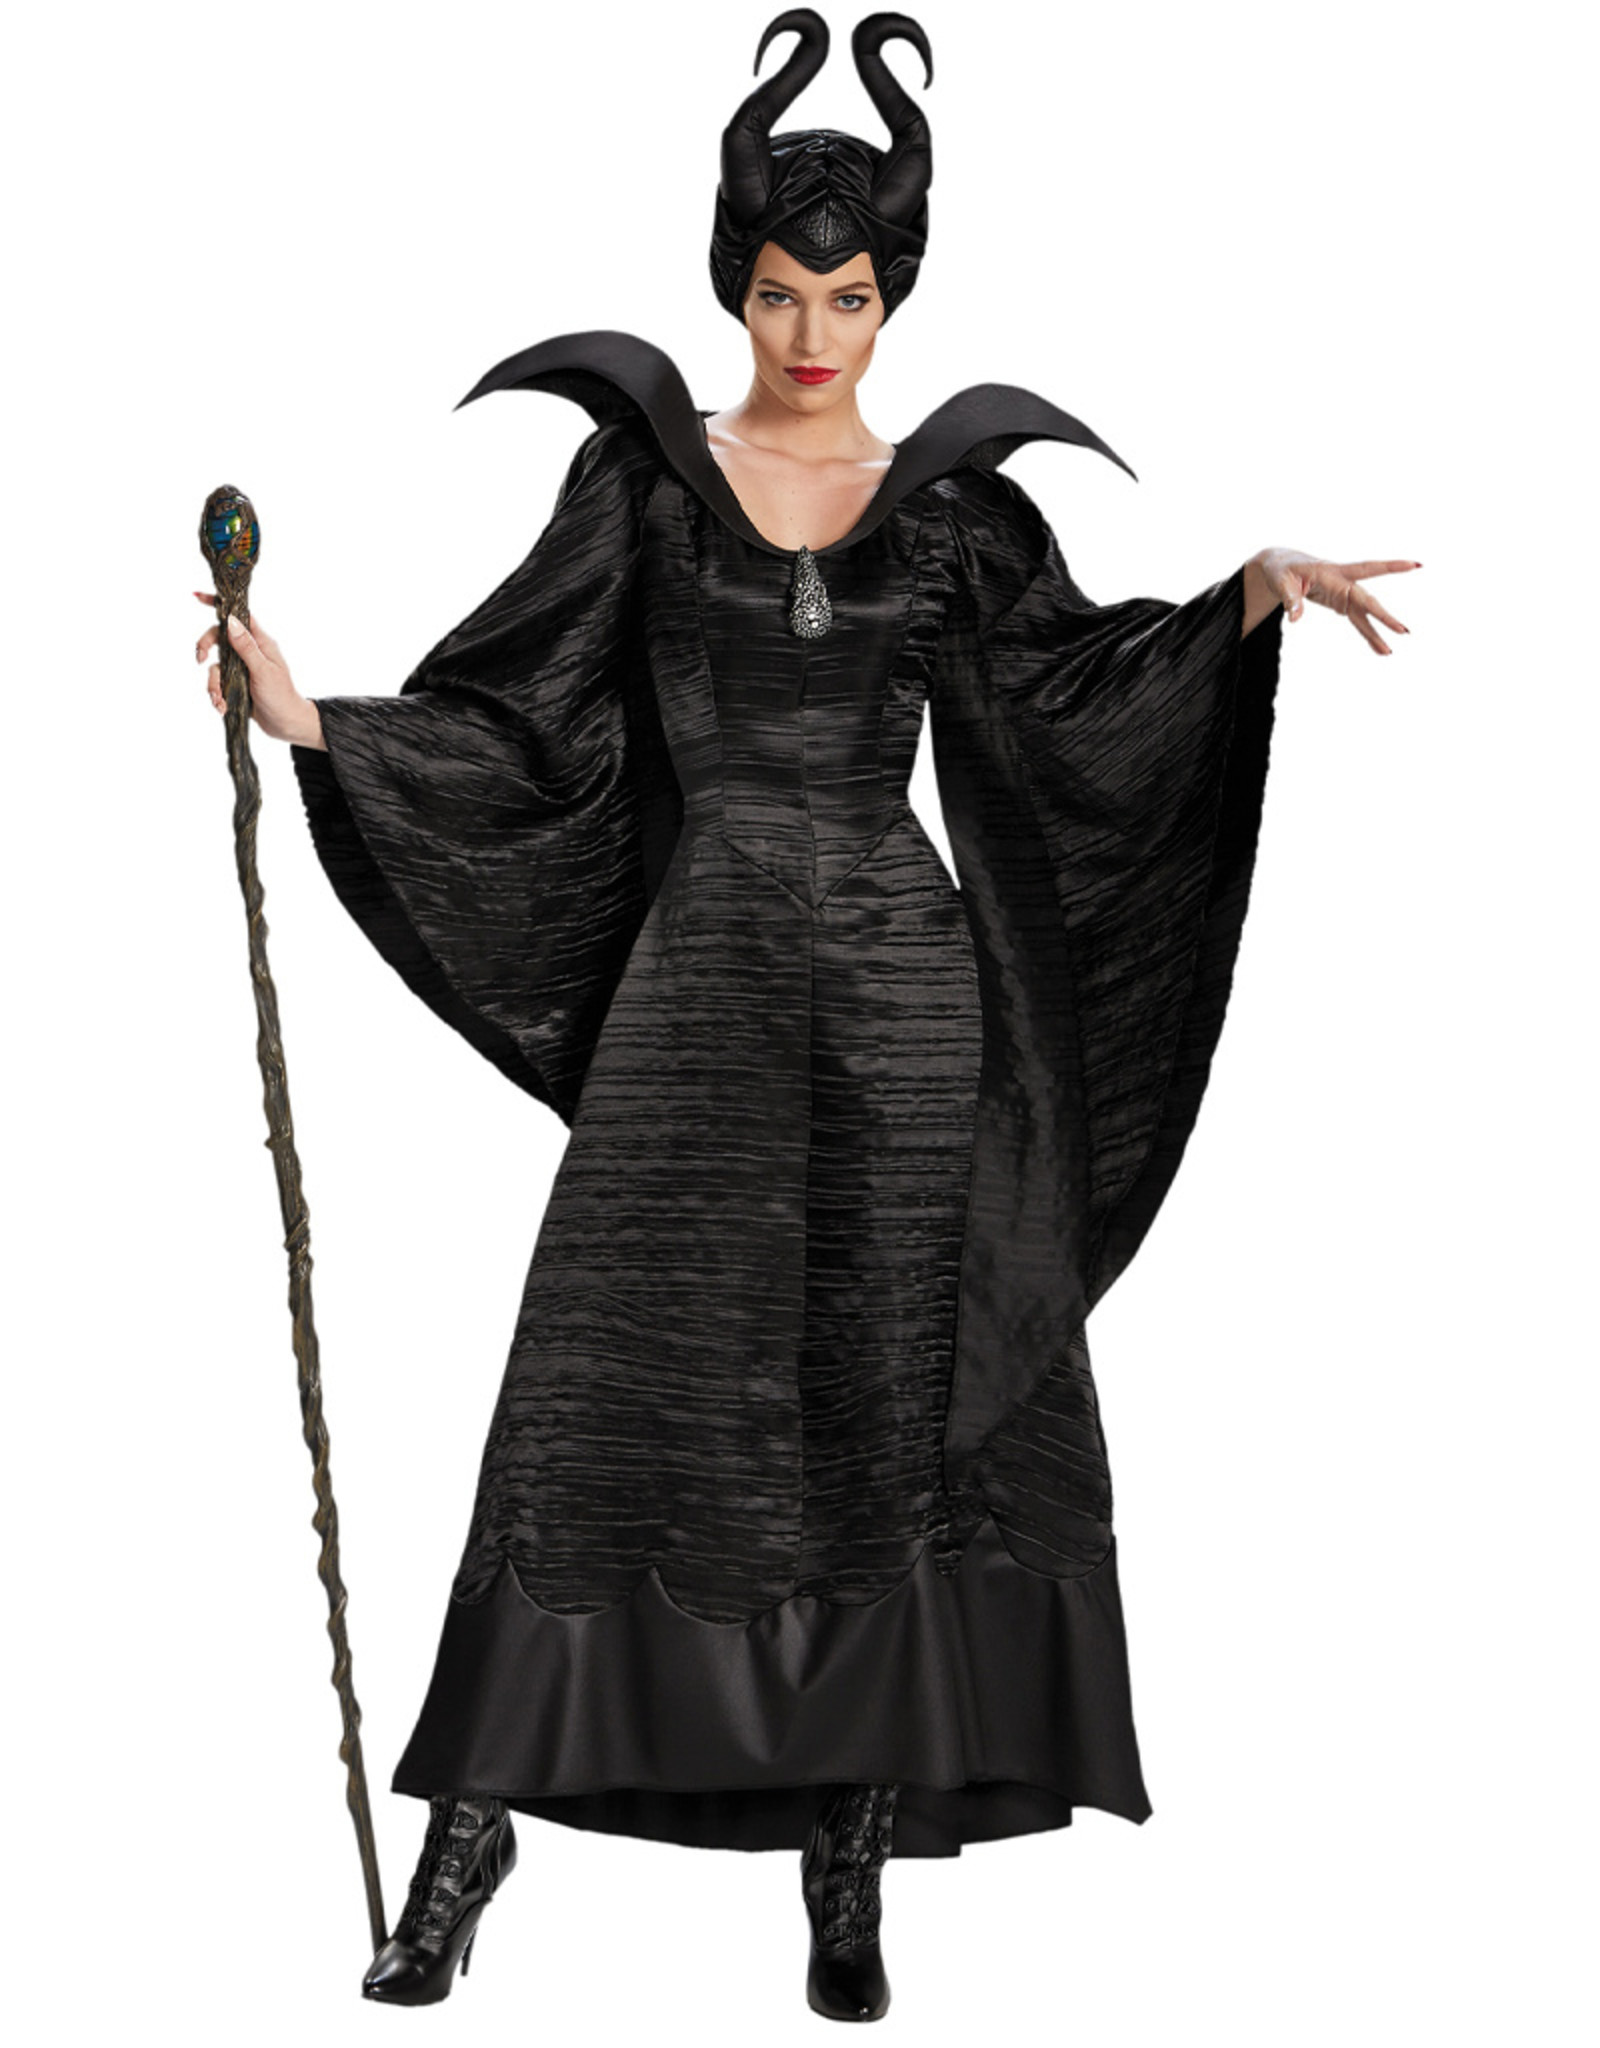 Maleficent Glam Costume - Women's